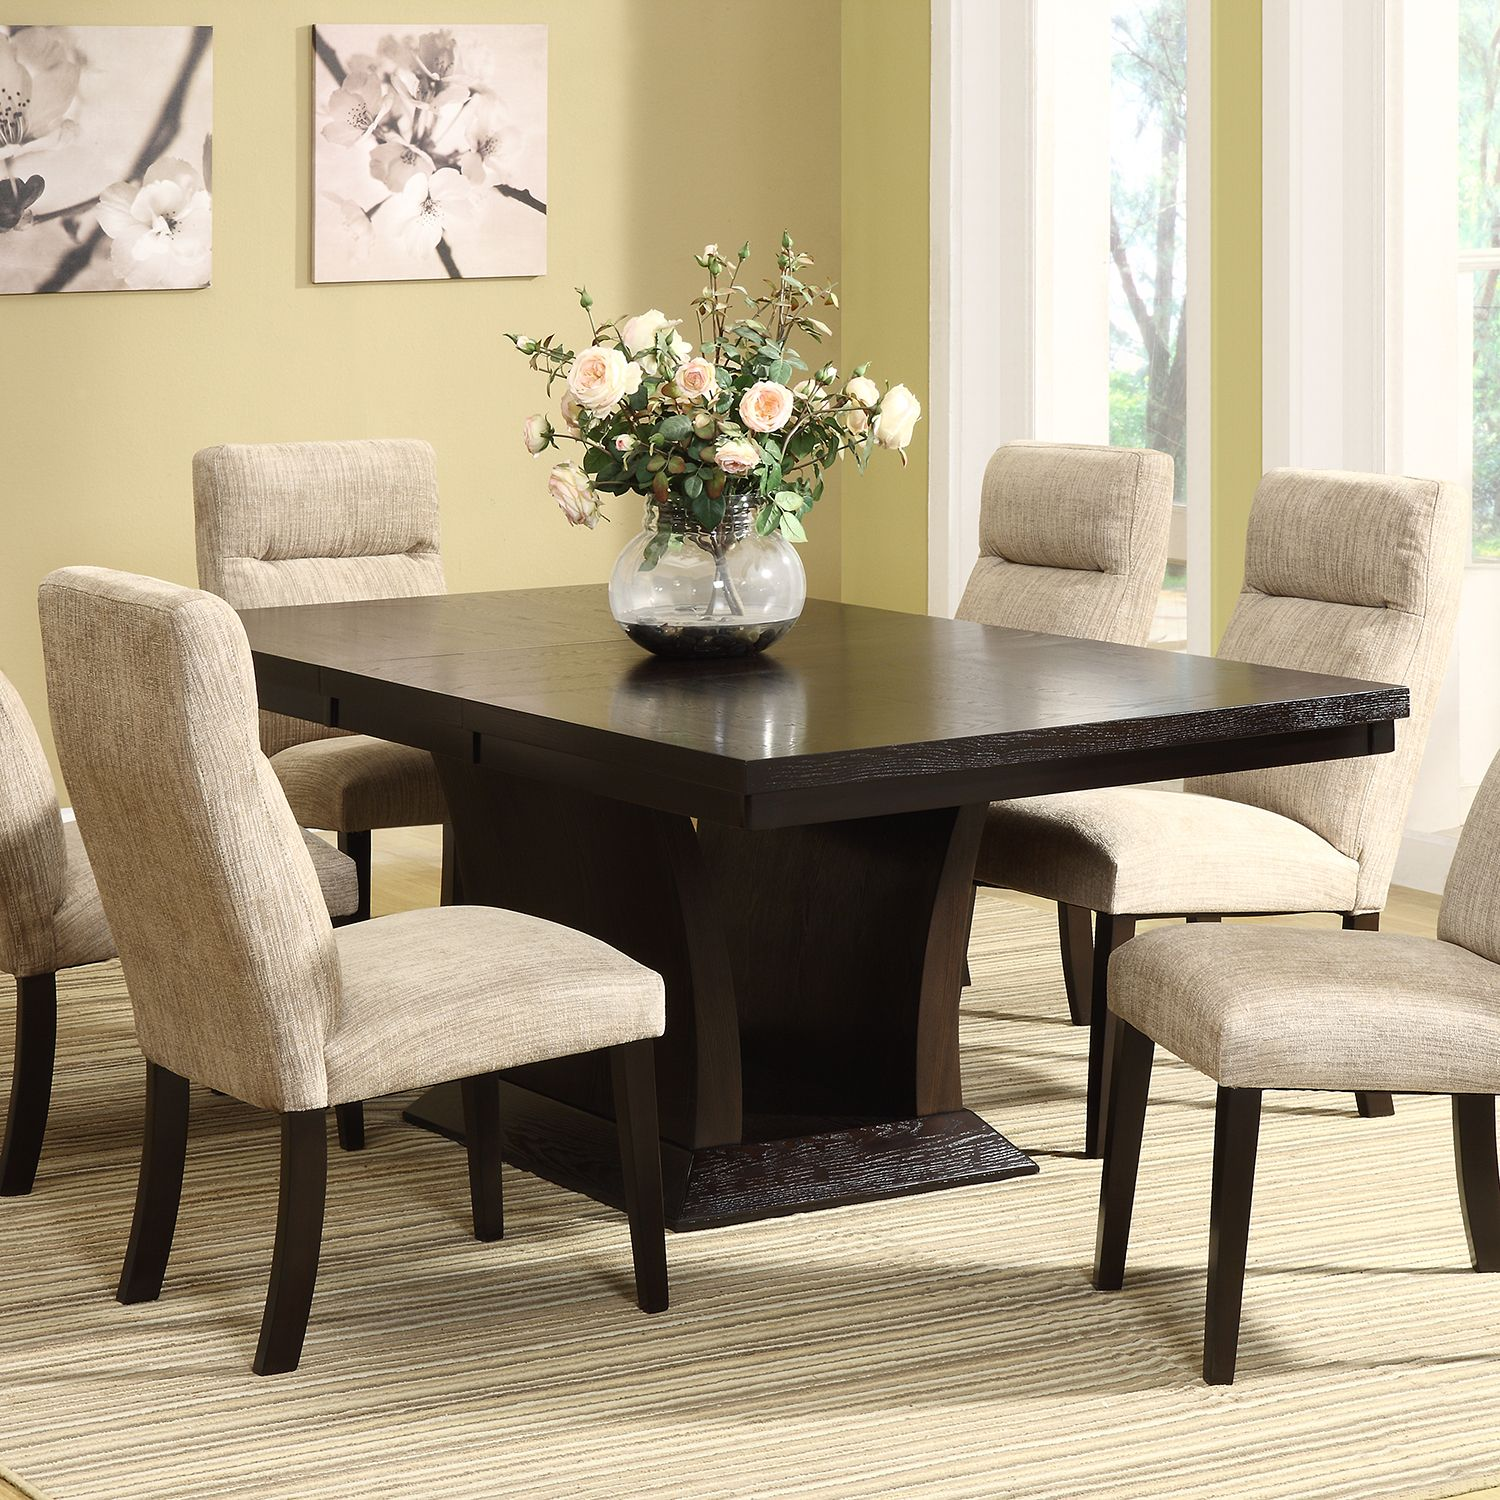 Avery - Espresso Dining Table by Home Elegance (Chairs Sold Separately)